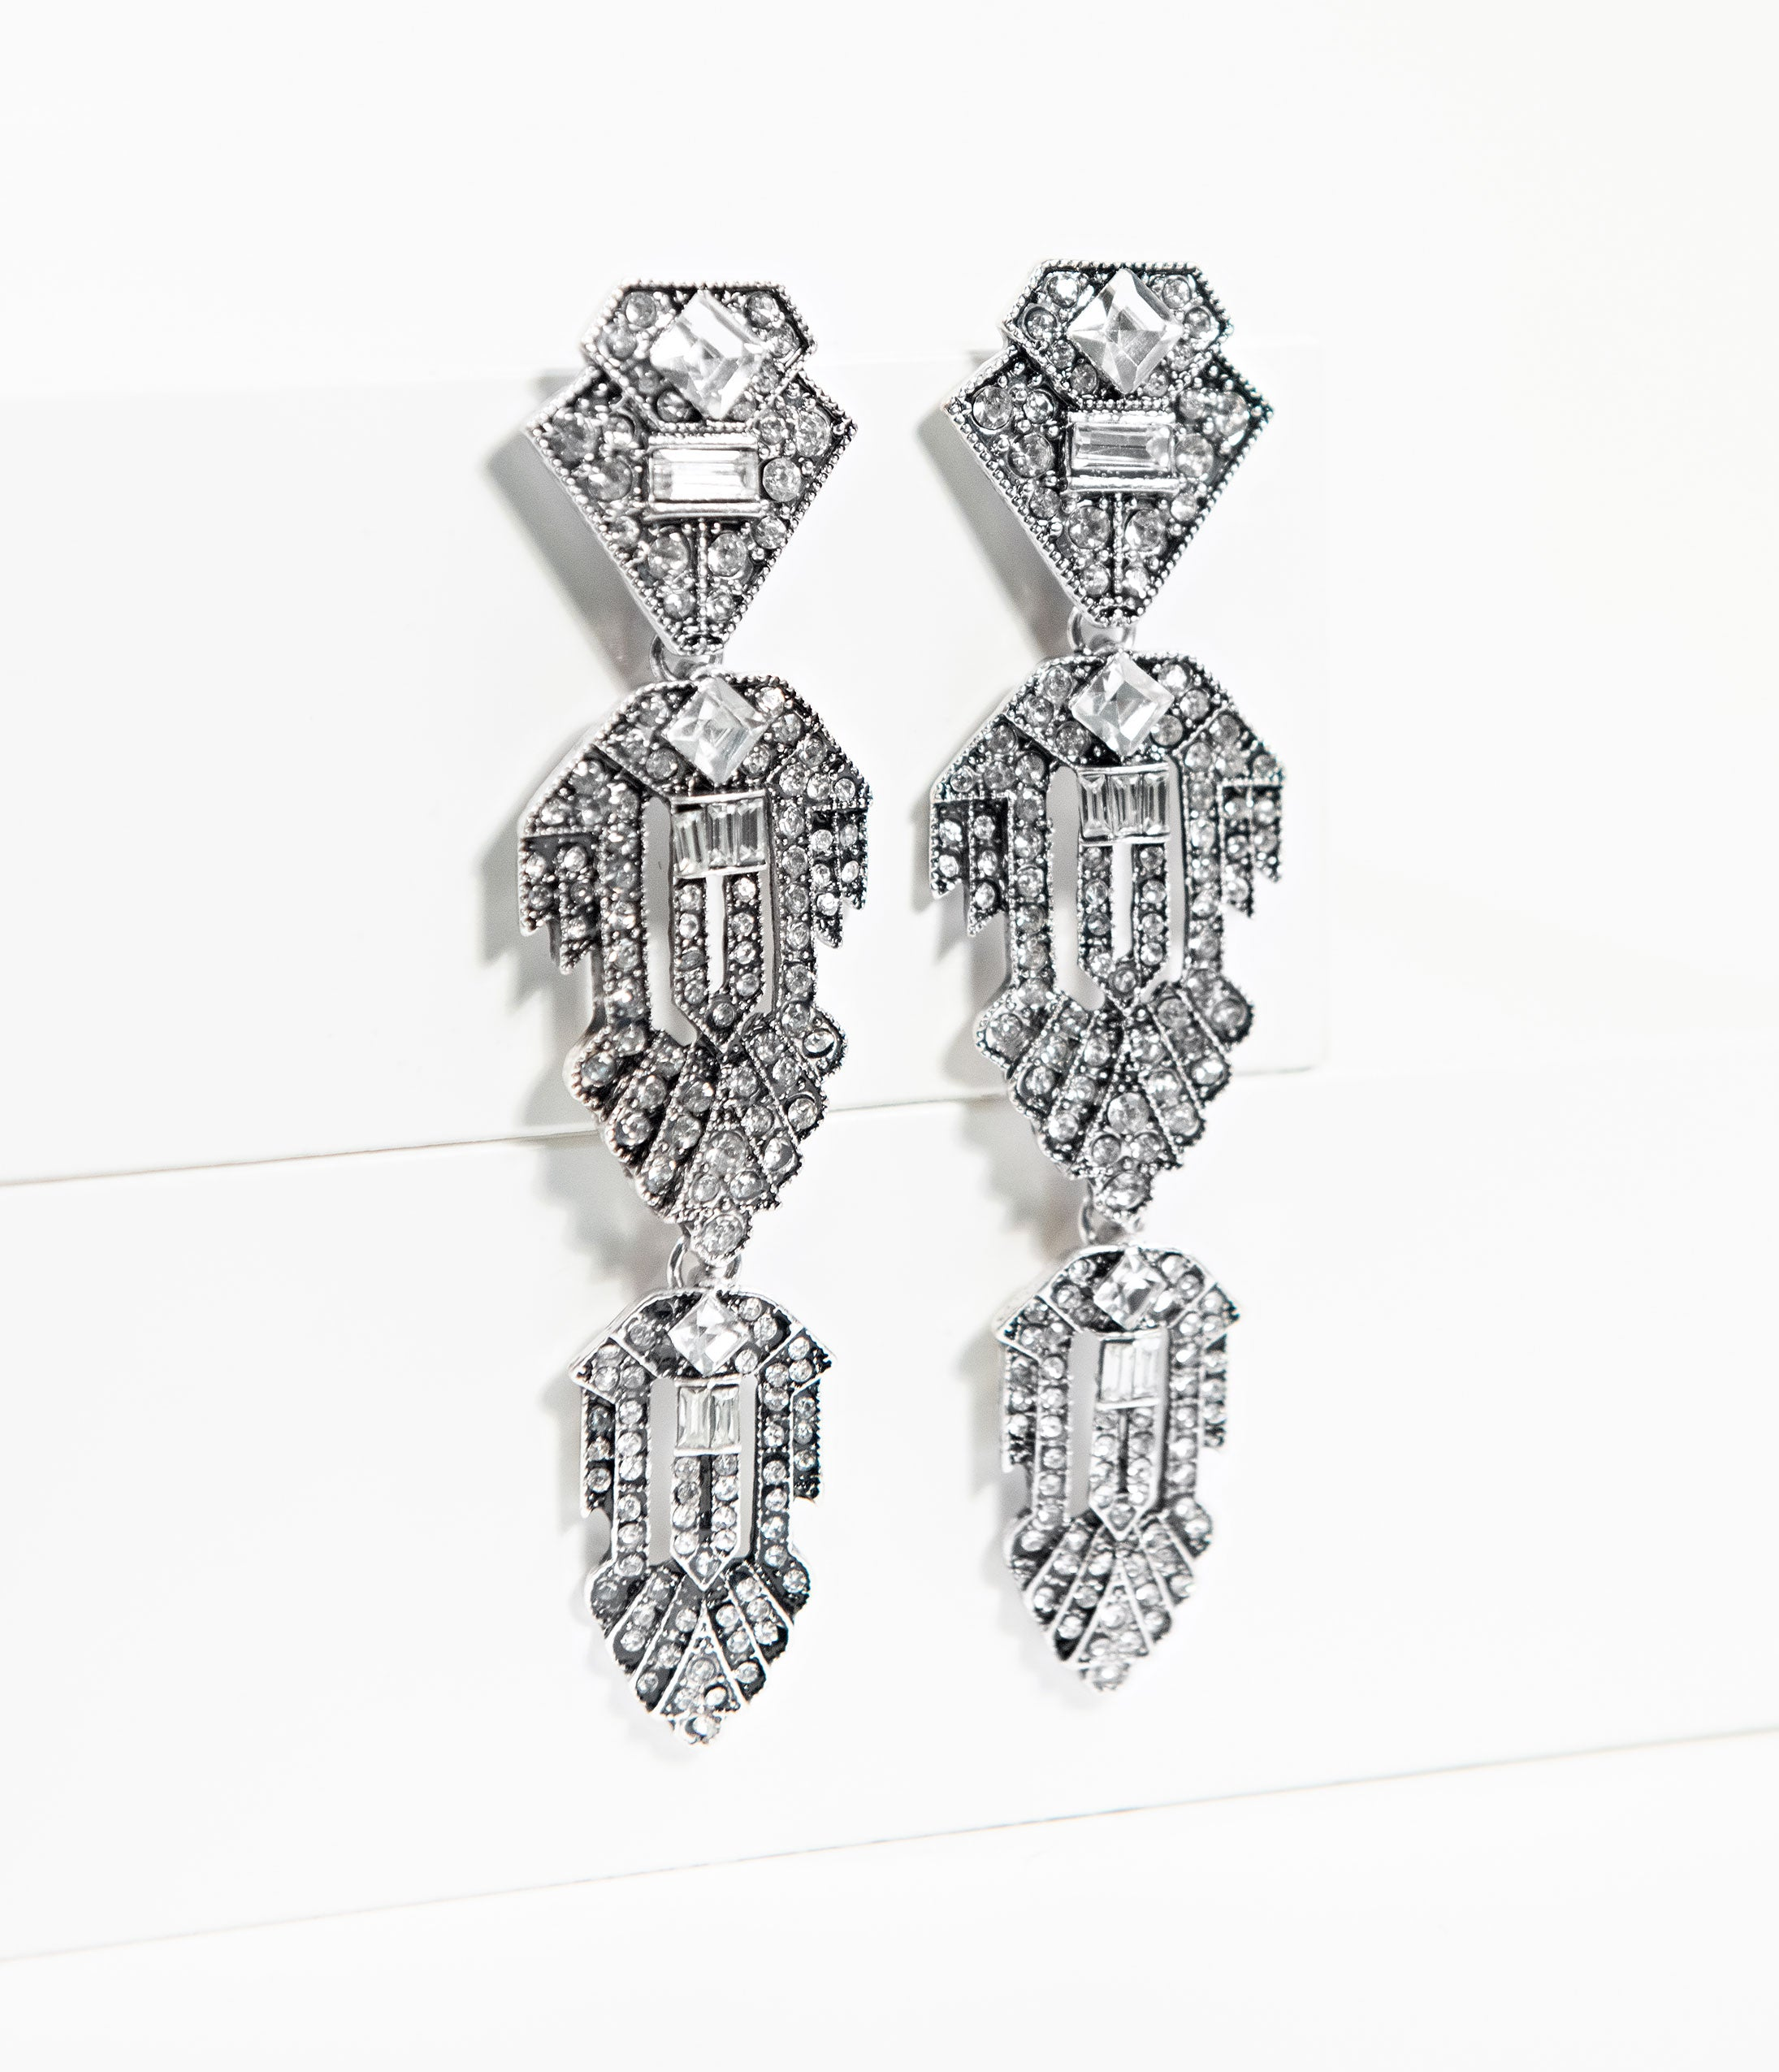 Vintage Style Jewelry, Retro Jewelry 1920S Style Silver Rhinestone Nouveau Drop Earrings $32.00 AT vintagedancer.com